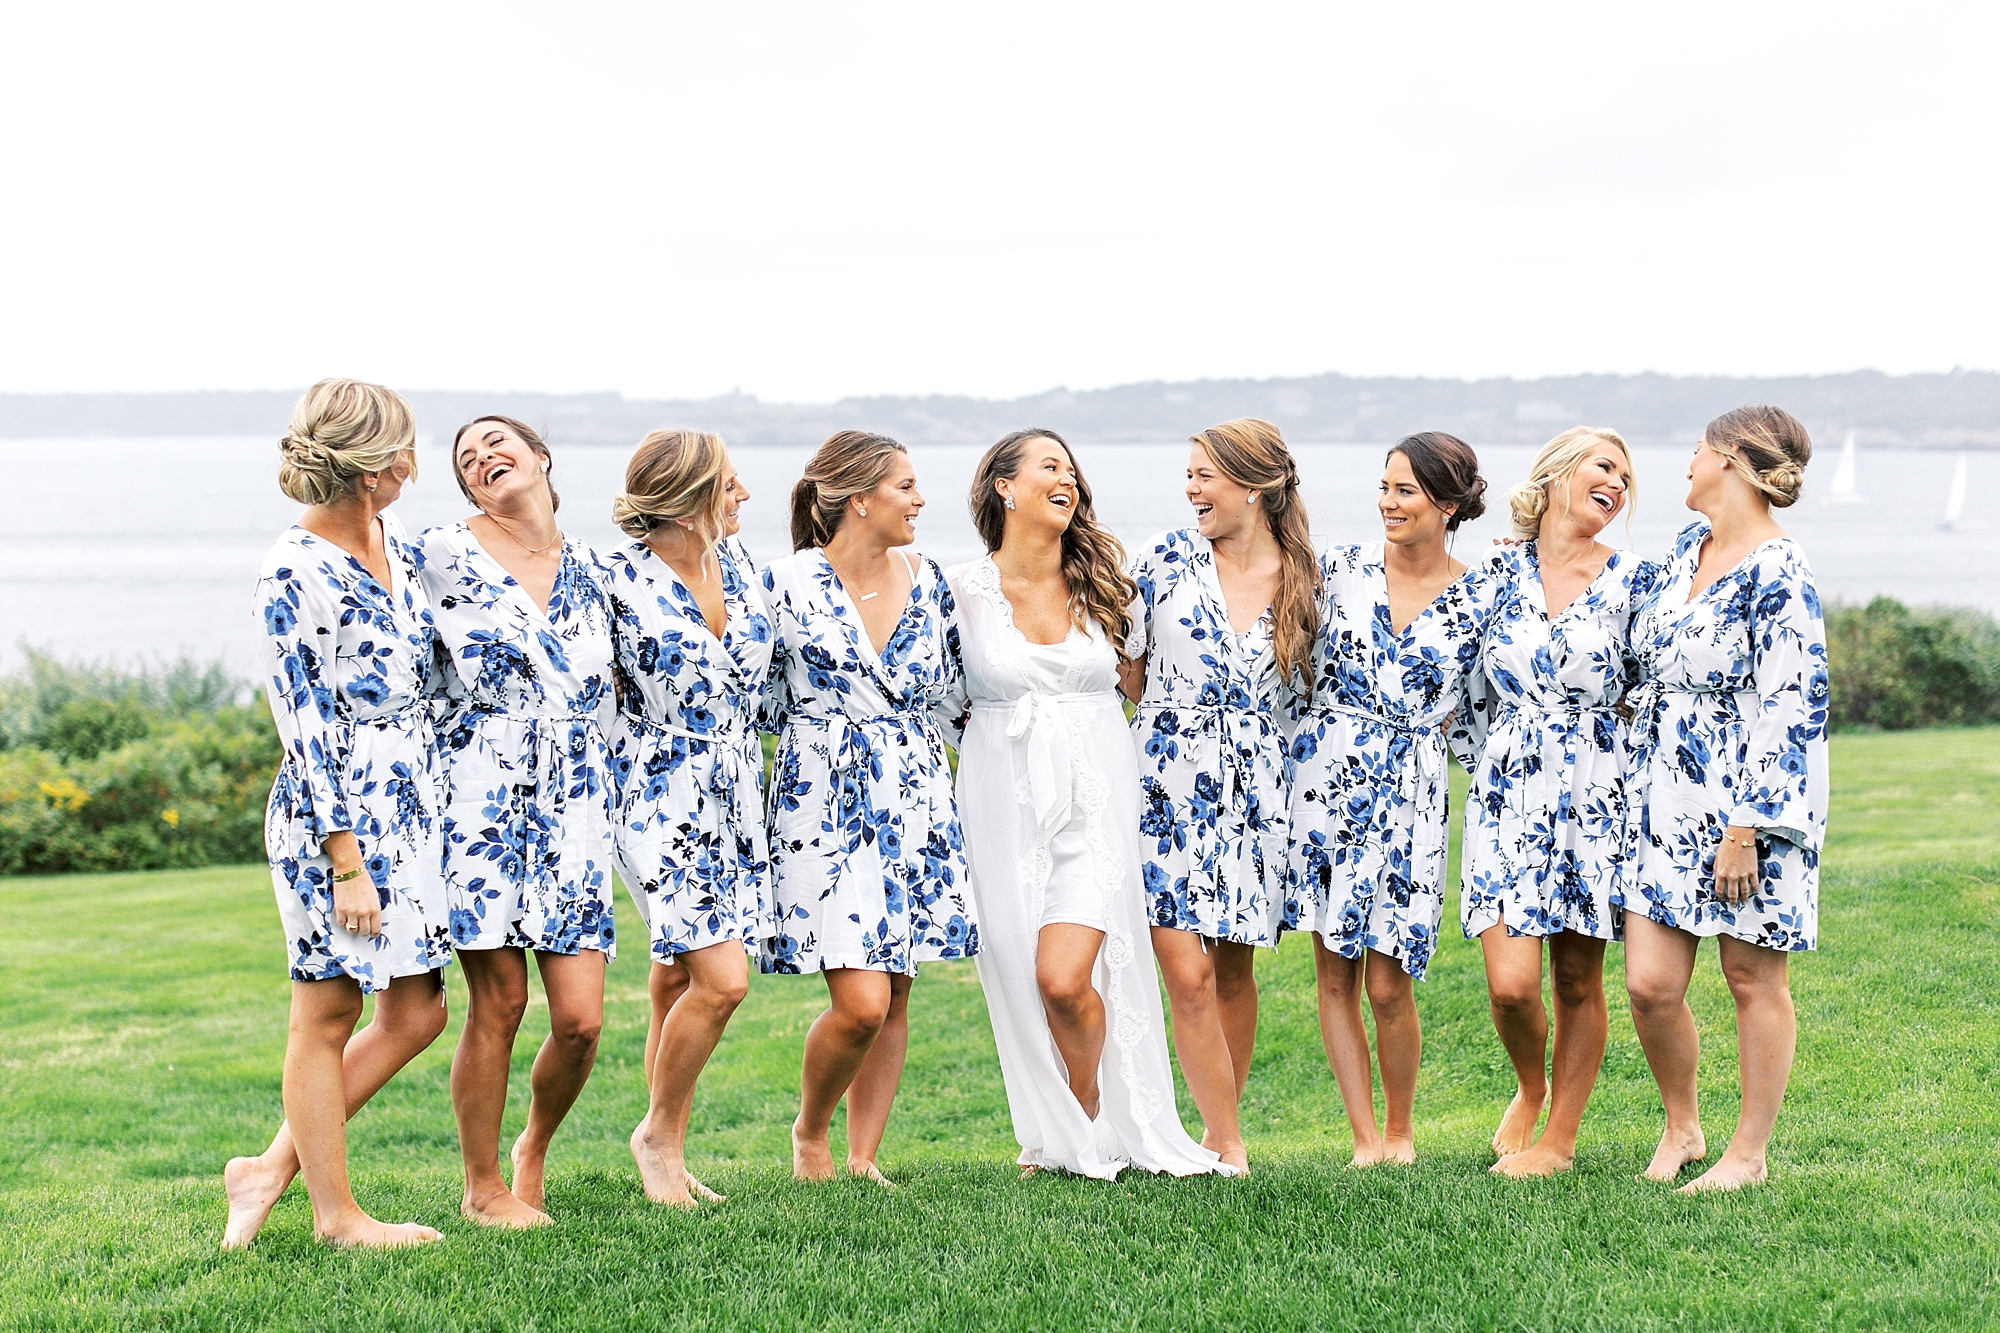 Coastal and Authentic Film Wedding Photography in Newport Rhode Island by Magdalena Studios 0003